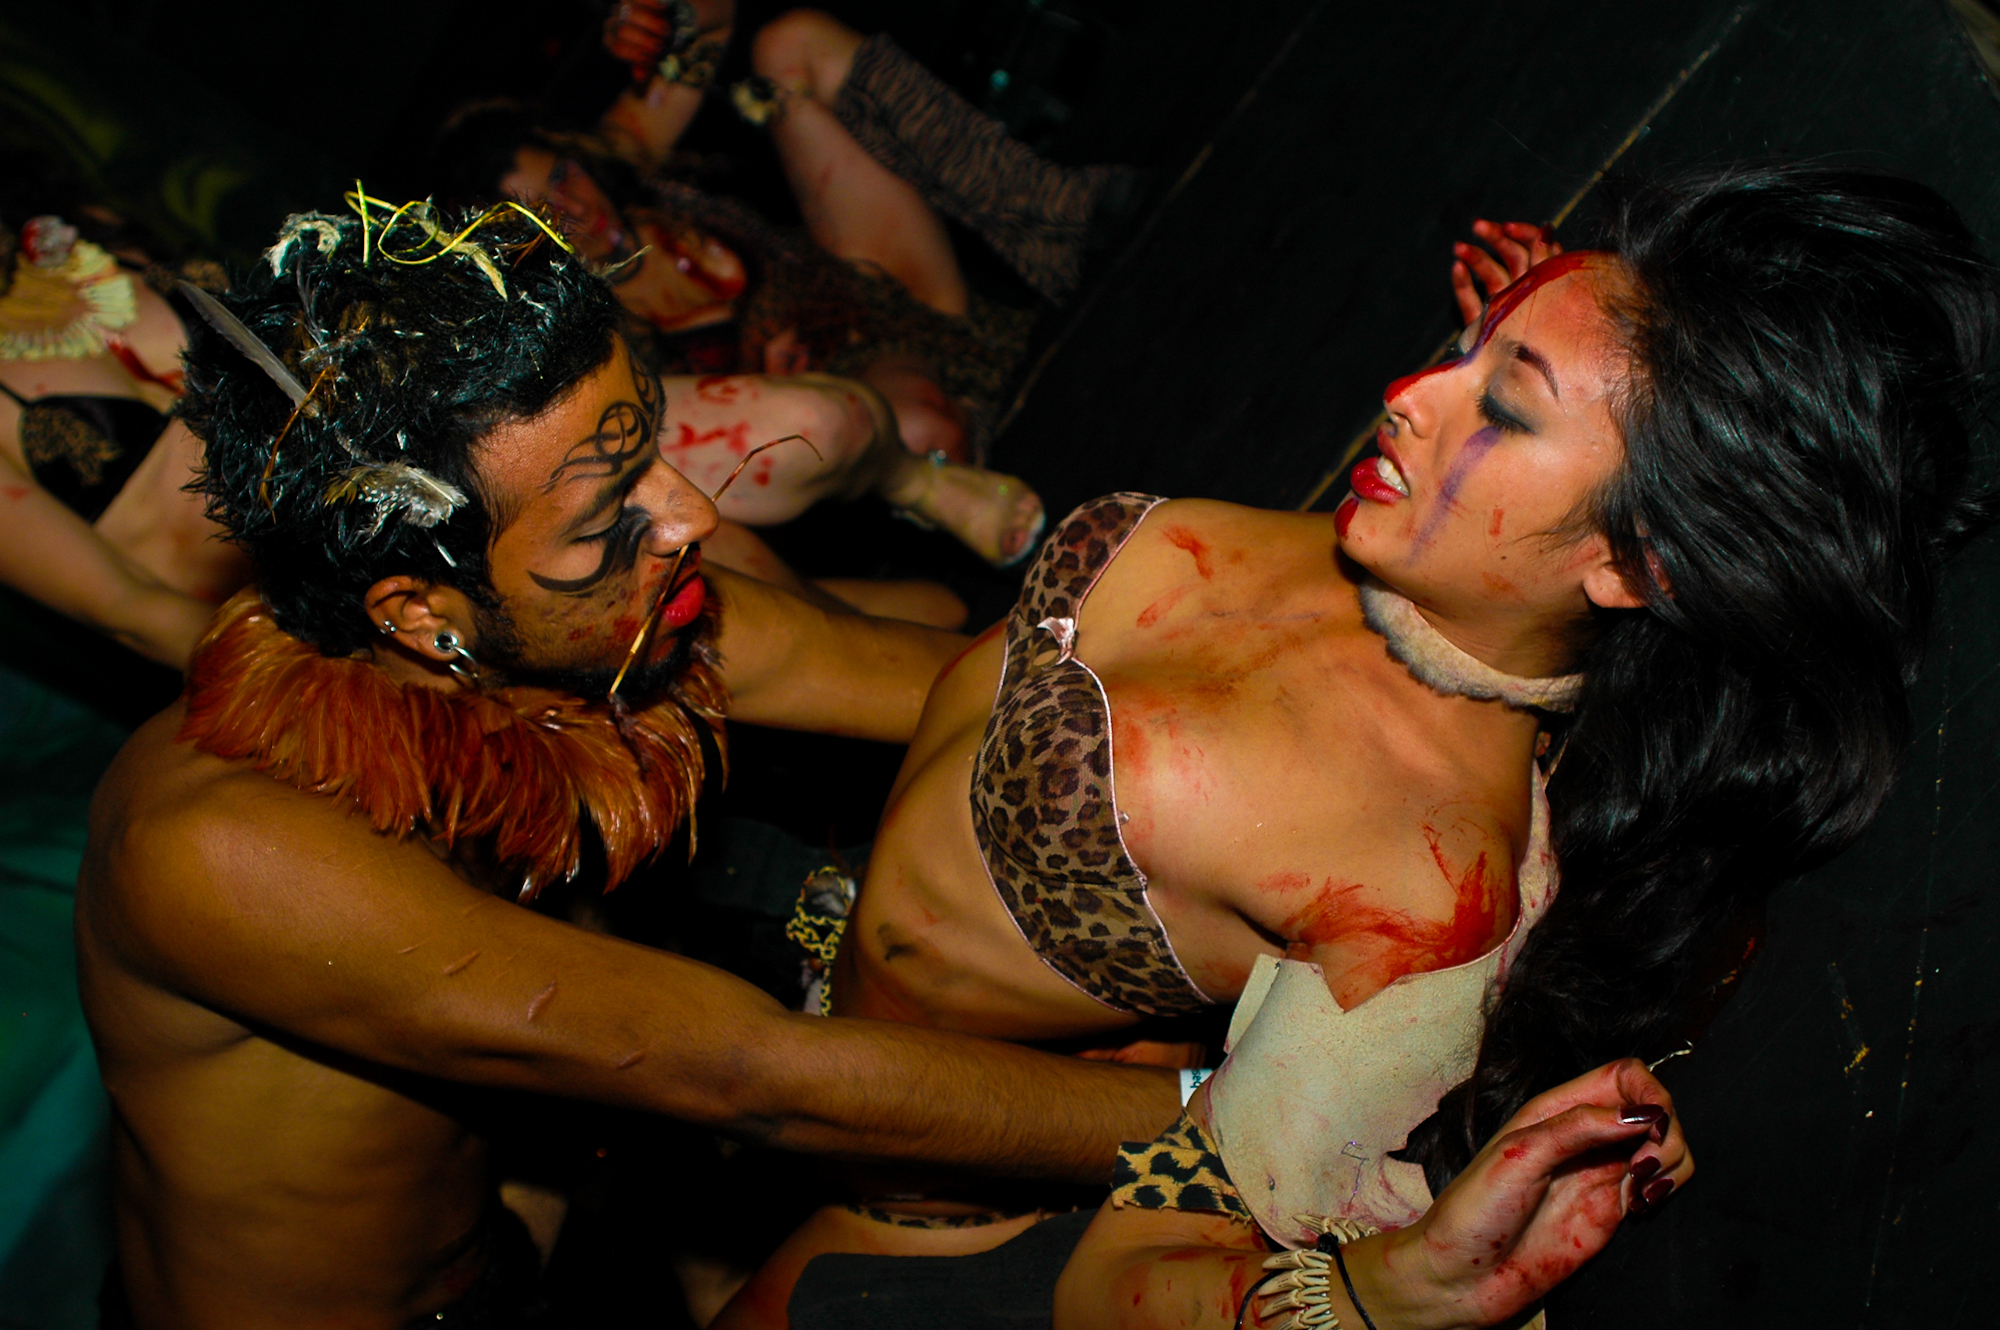 Erotic toga party pictures